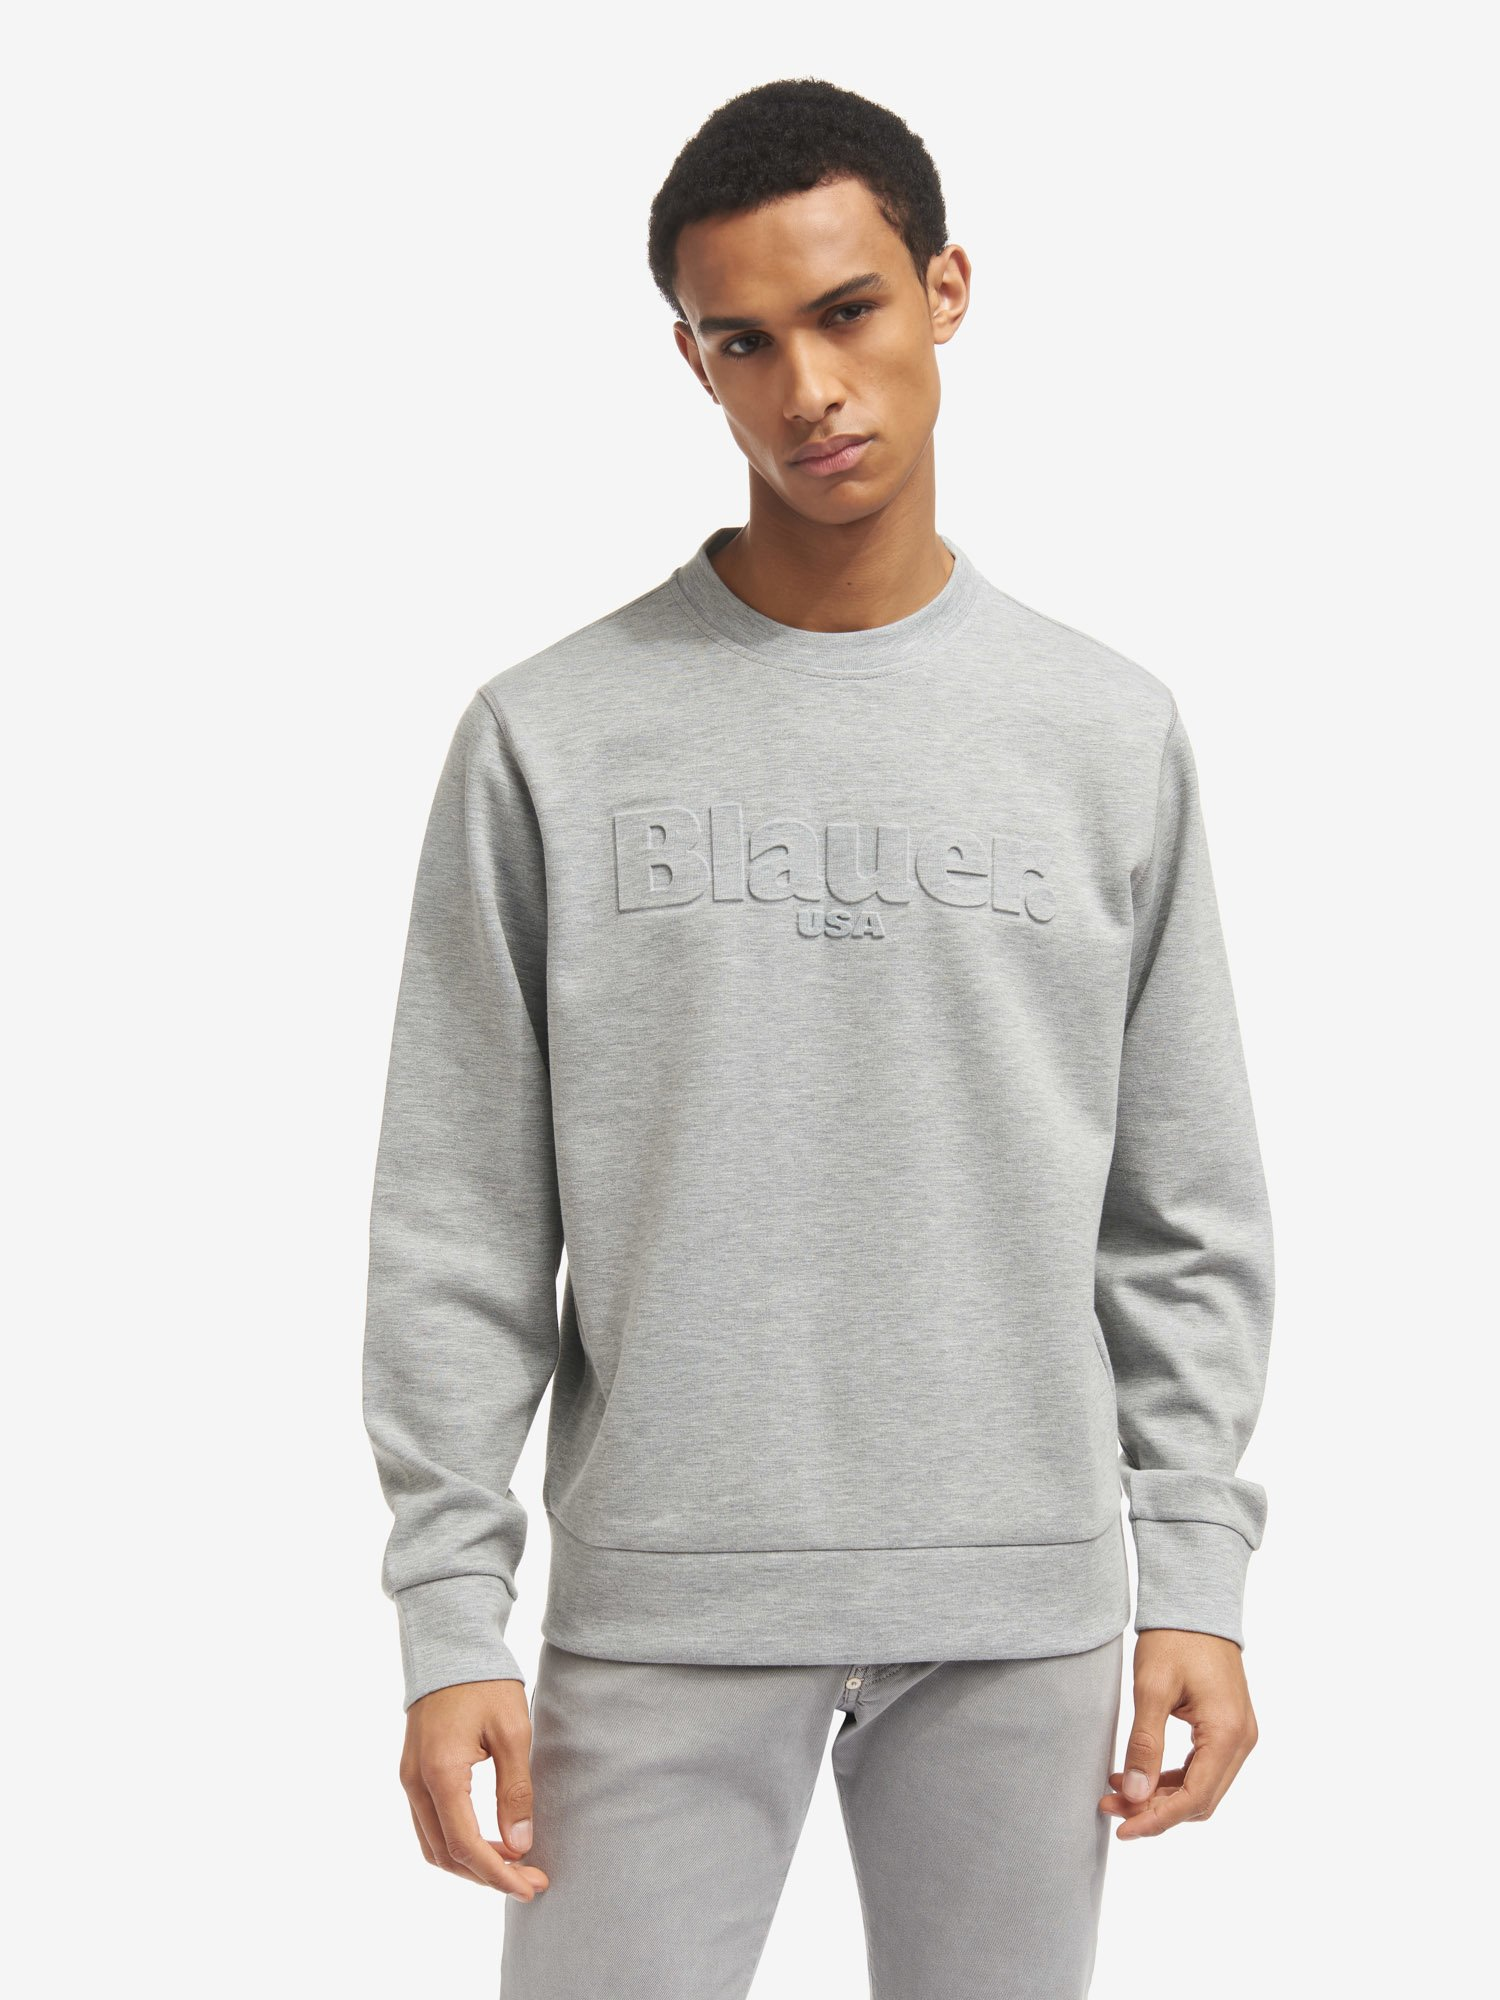 TWO-TONE CREW NECK SWEATSHIRT - Blauer